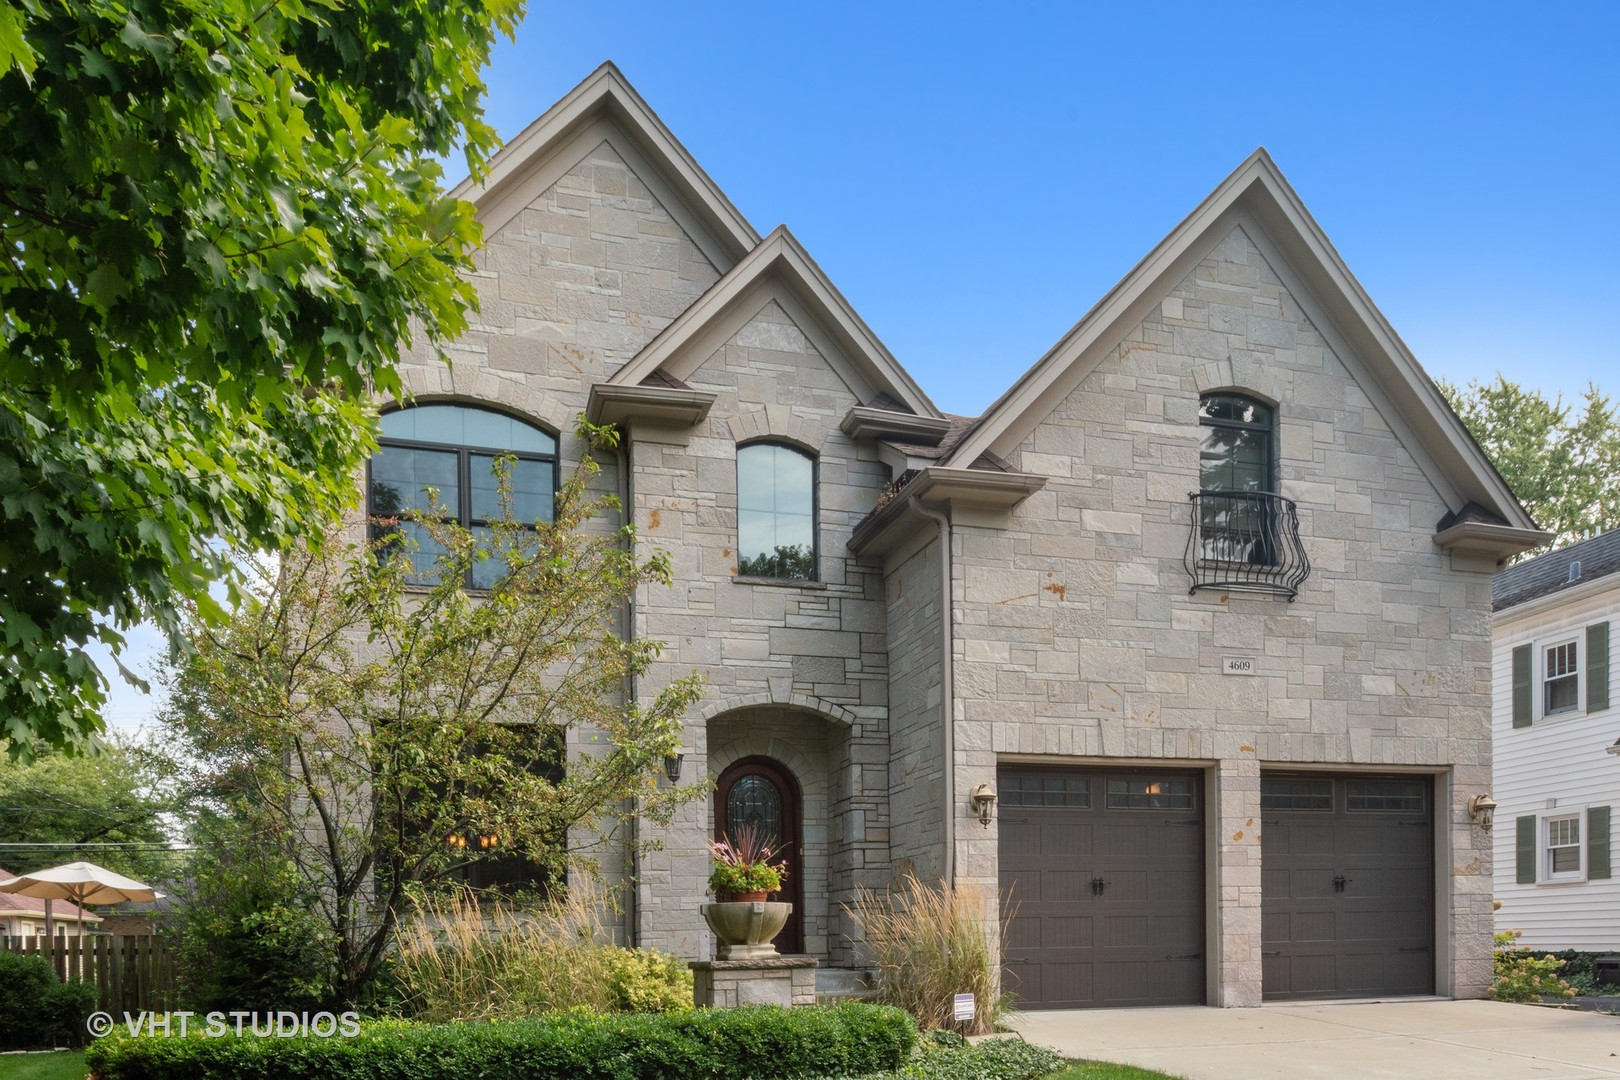 Photo for 4609 Forest Avenue, Downers Grove, IL 60515 (MLS # 10604732)